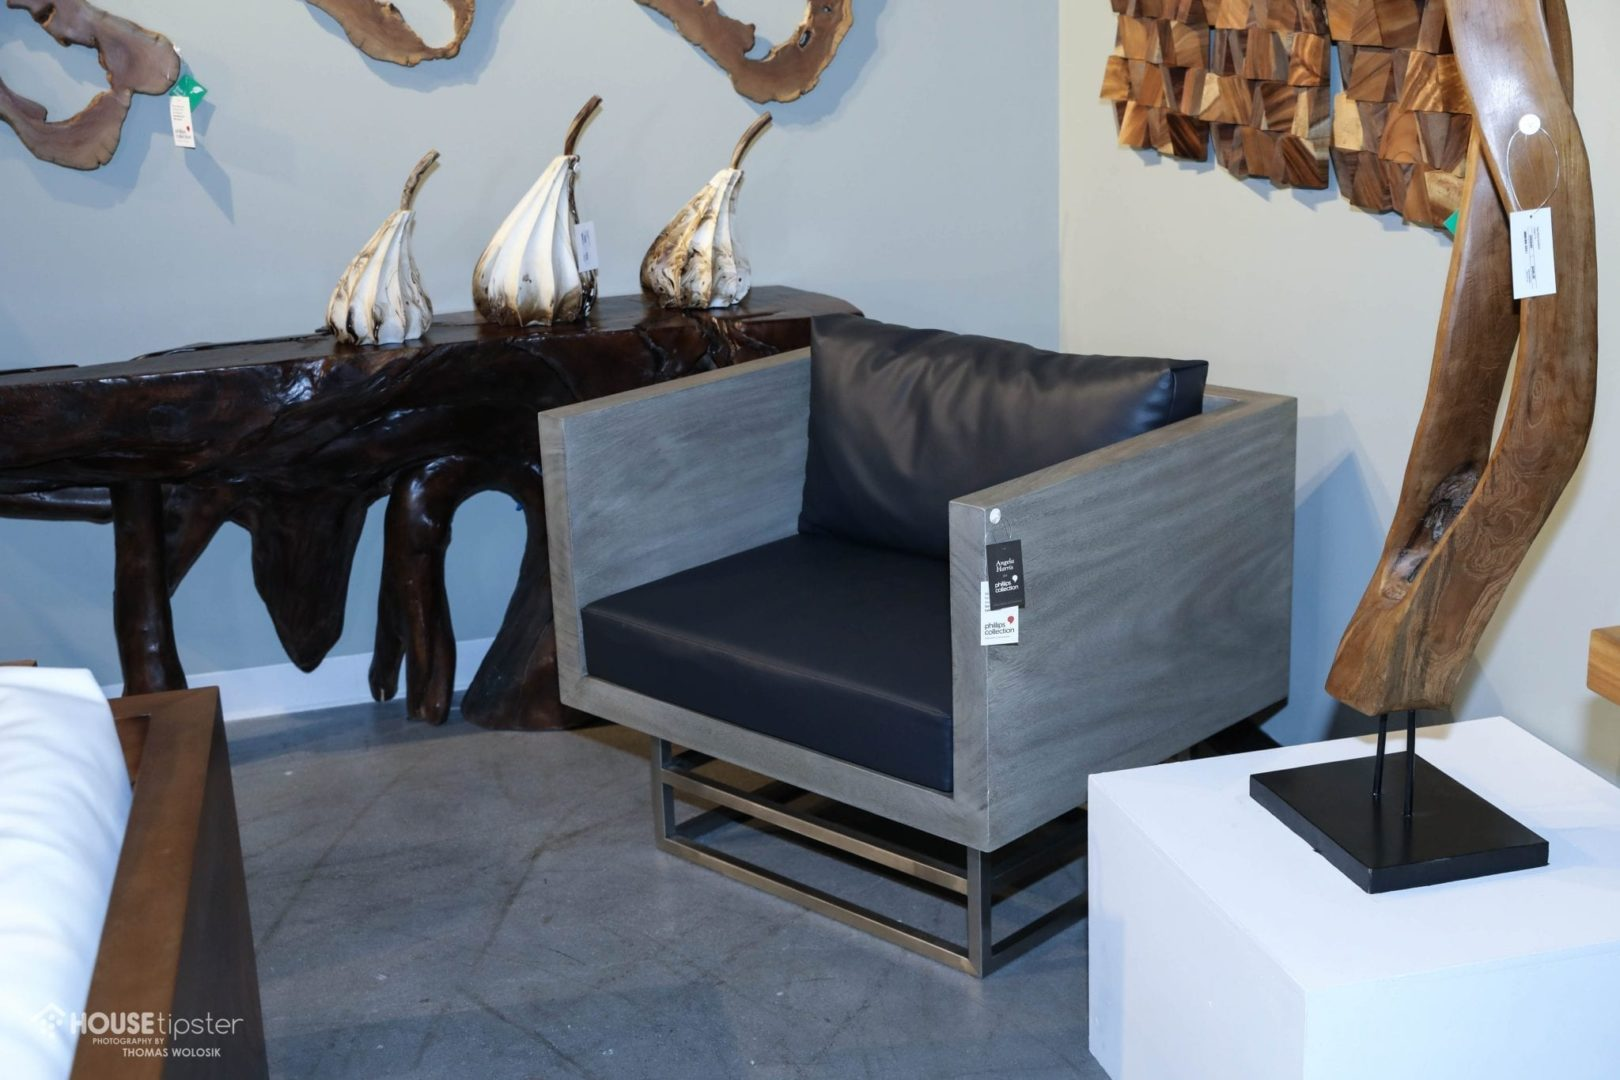 Home decor furniture phillips collection Elements Sofas And Accent Tables Meant To Appeal To Those Who Want To Tell Story Through Furniture And Home Decor Angela Harris For Phillips Collection Pinterest Angela Harris Trio House Tipster Industry